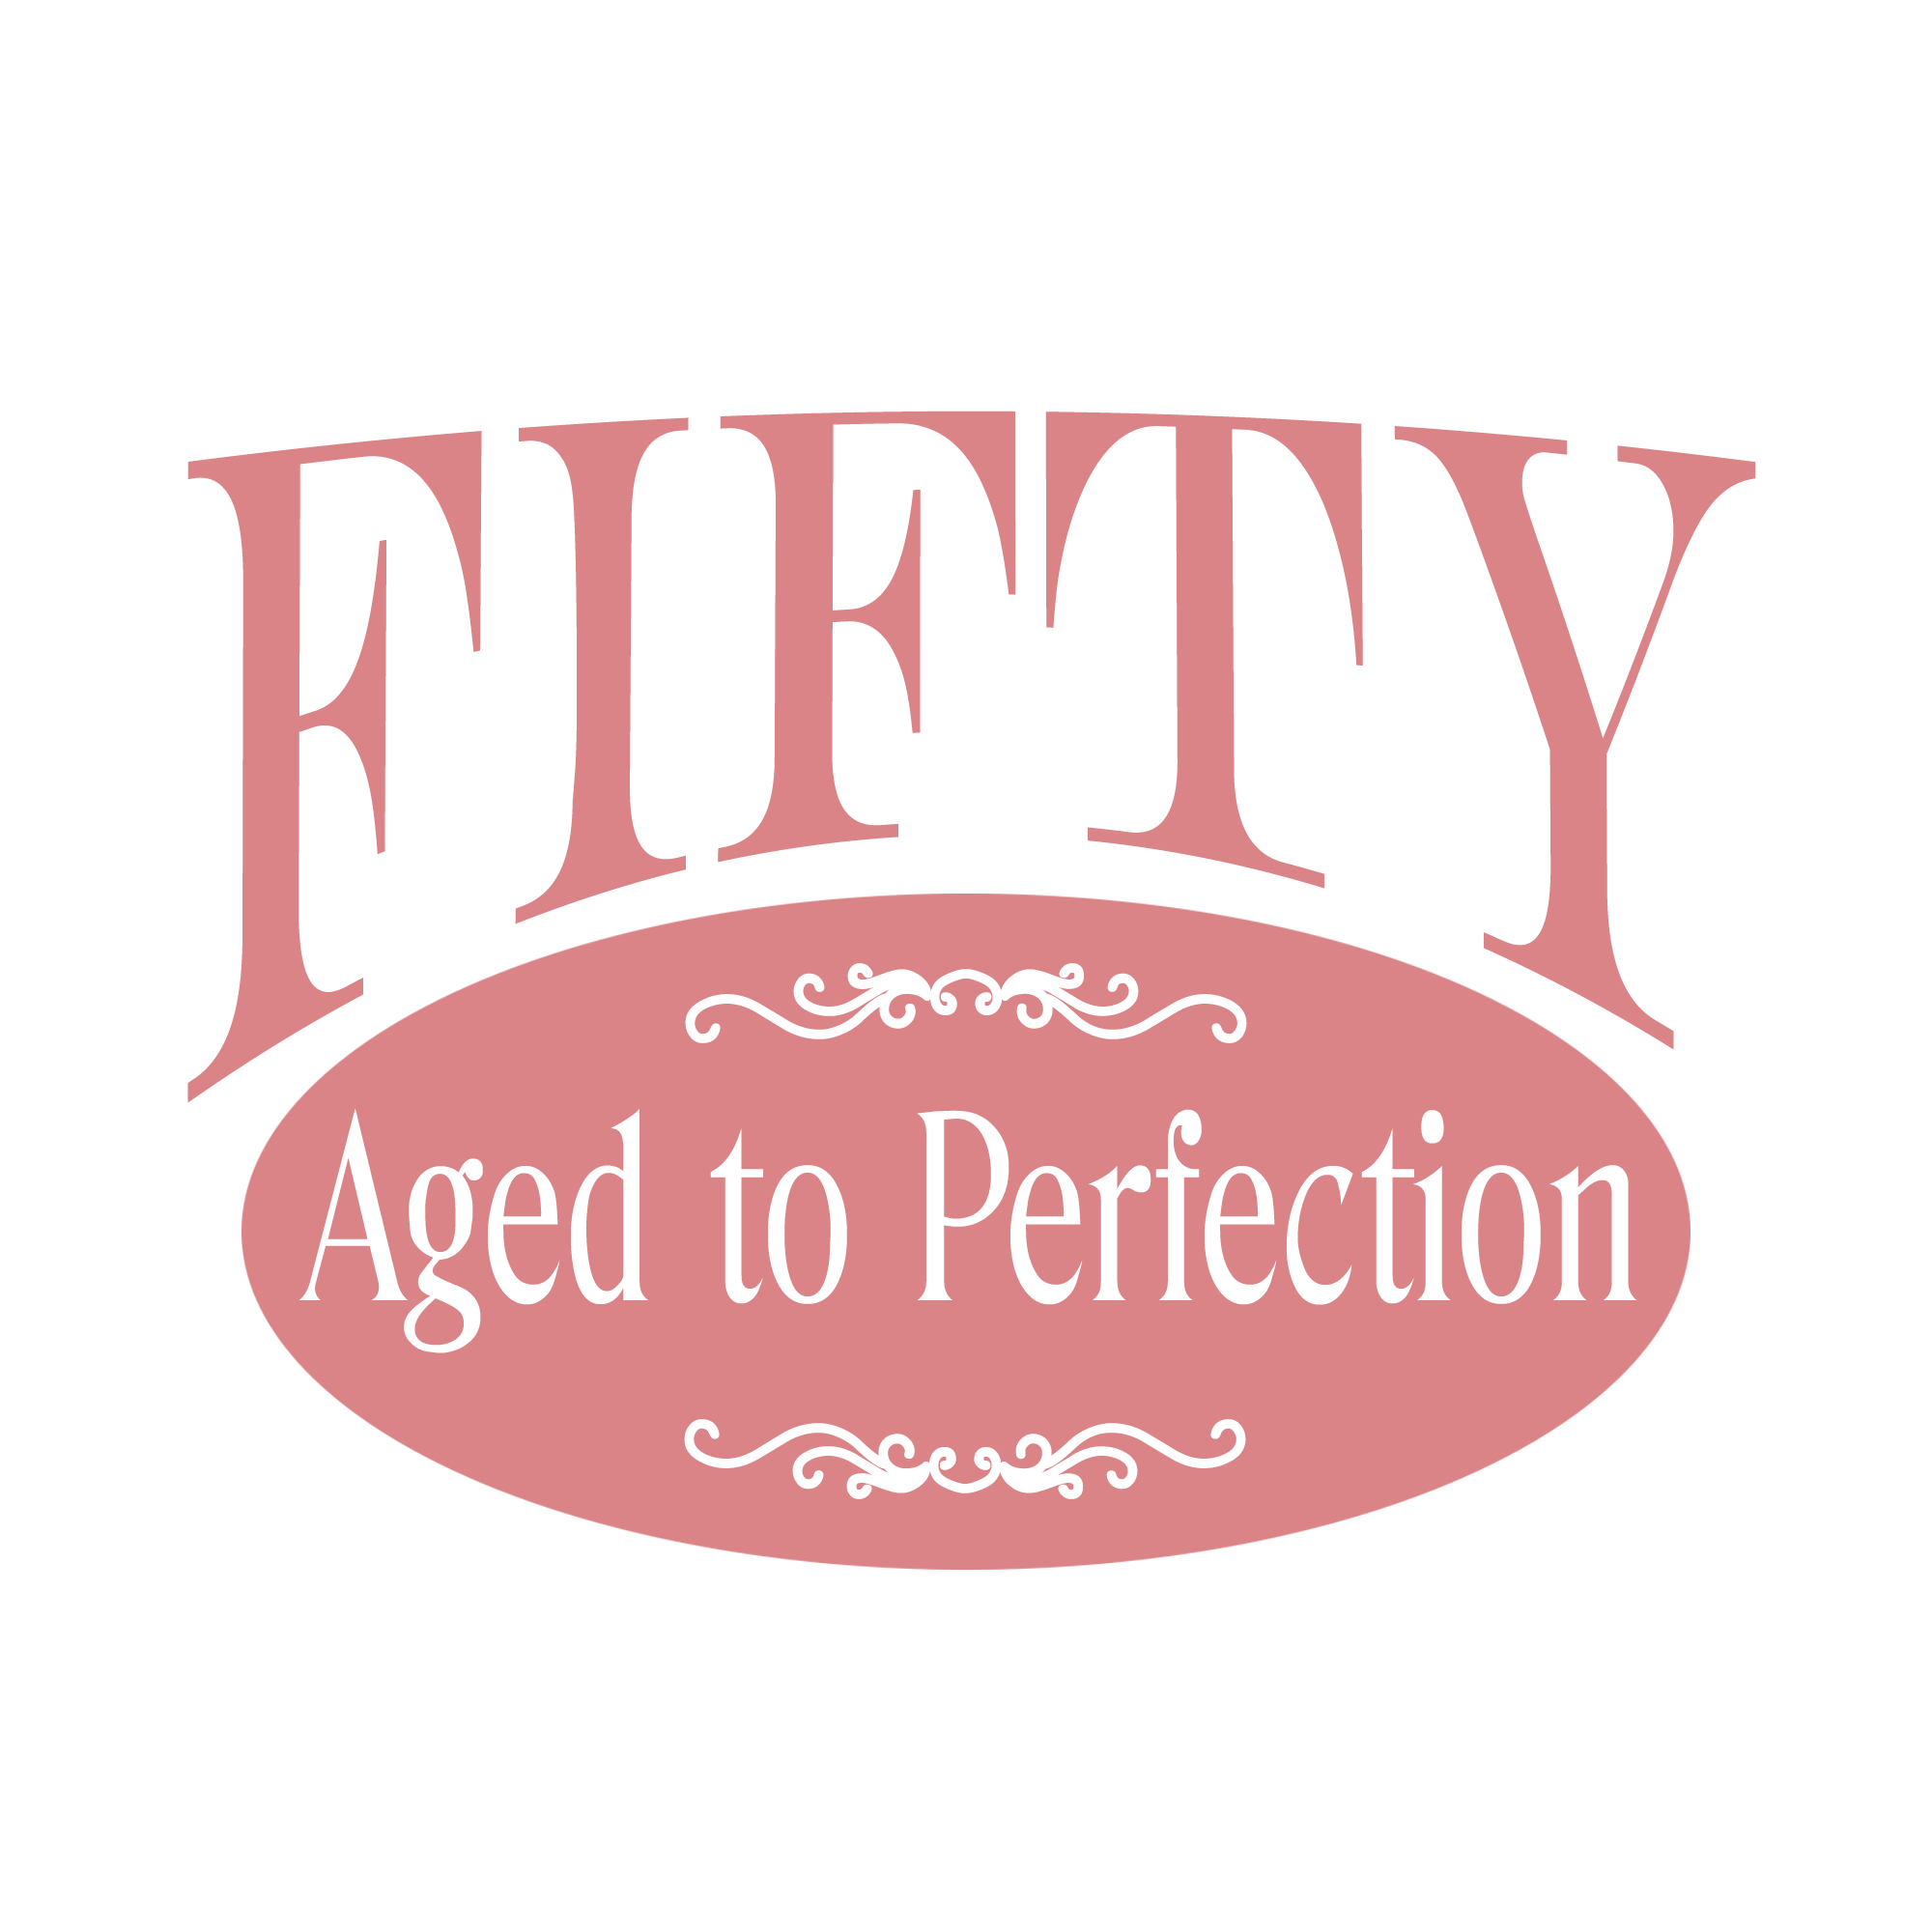 50th birthday humor saying for woman: Fifty, Aged to.